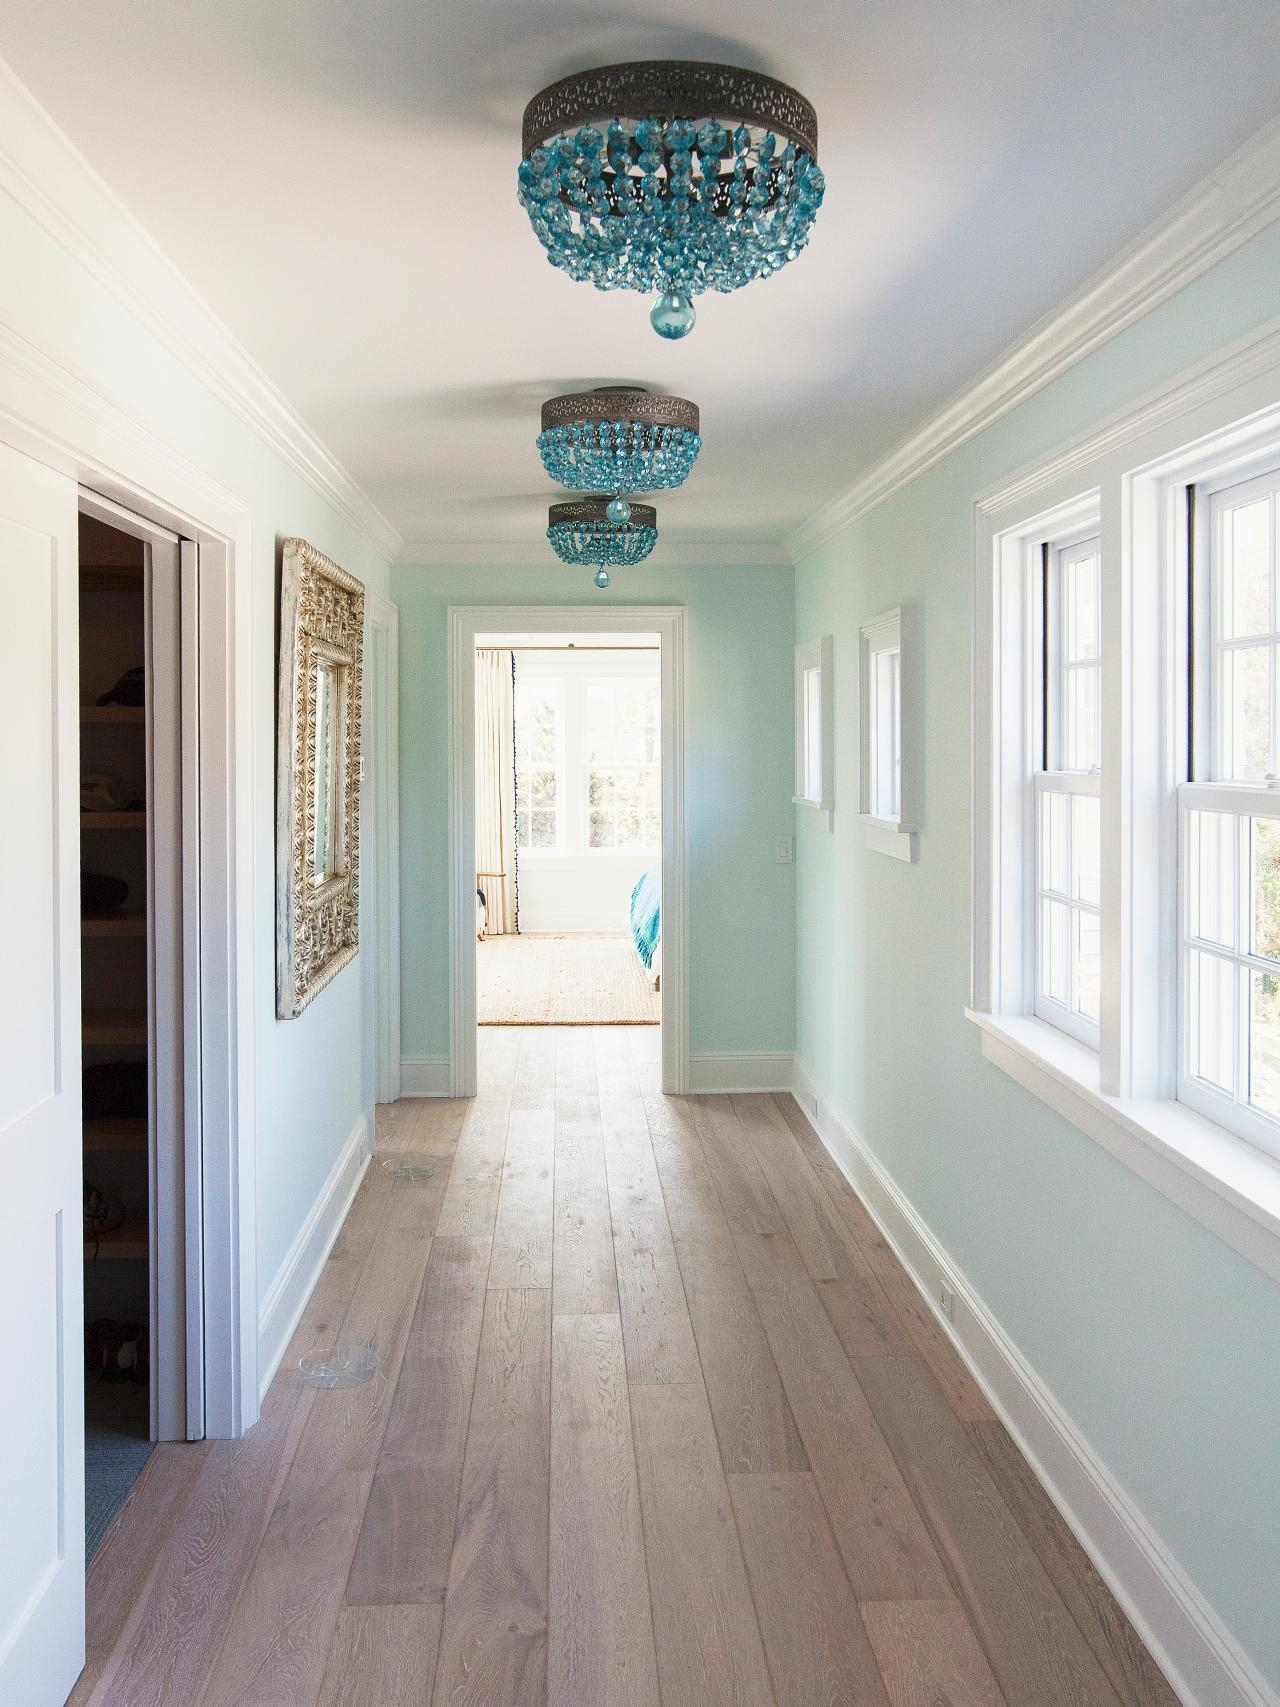 Interior Foyer Light With Black Copper Glass Lantern Chandelier For Small Hallway Chandeliers (View 7 of 15)